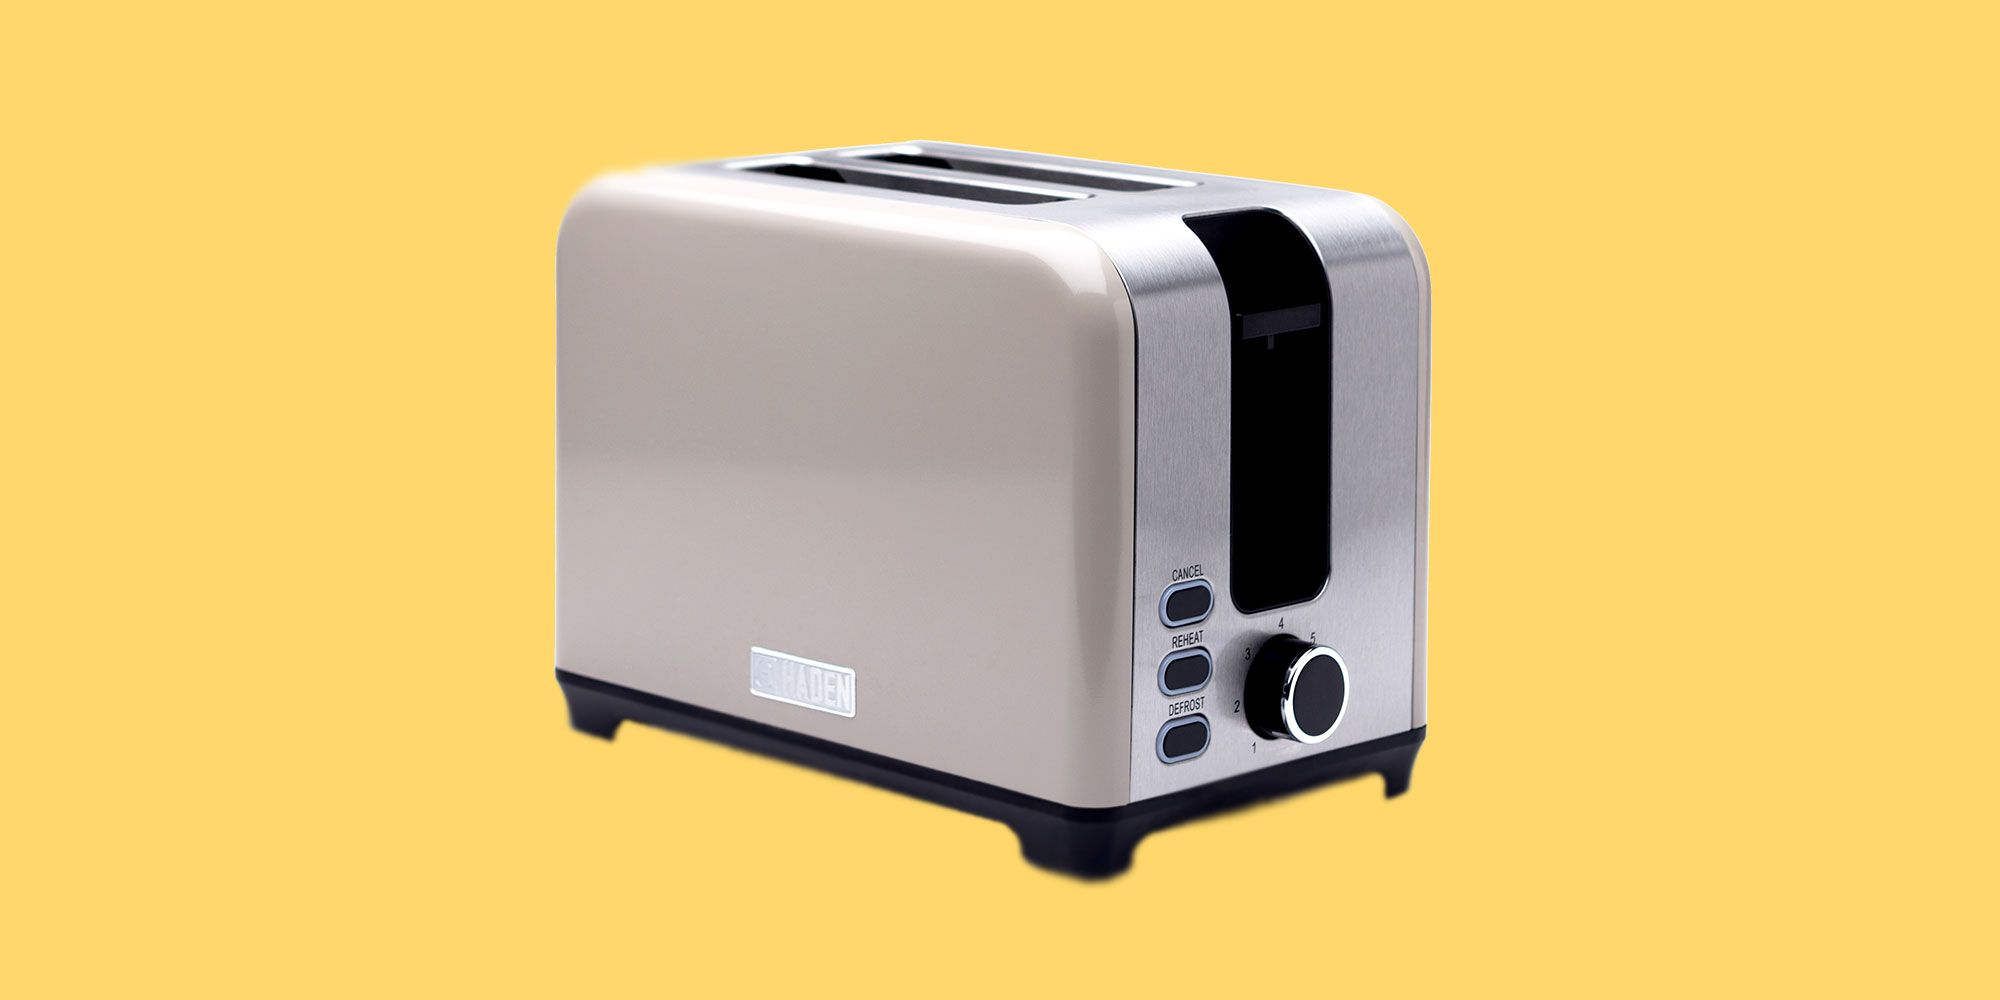 Haden Jersey Toaster 192806 Review